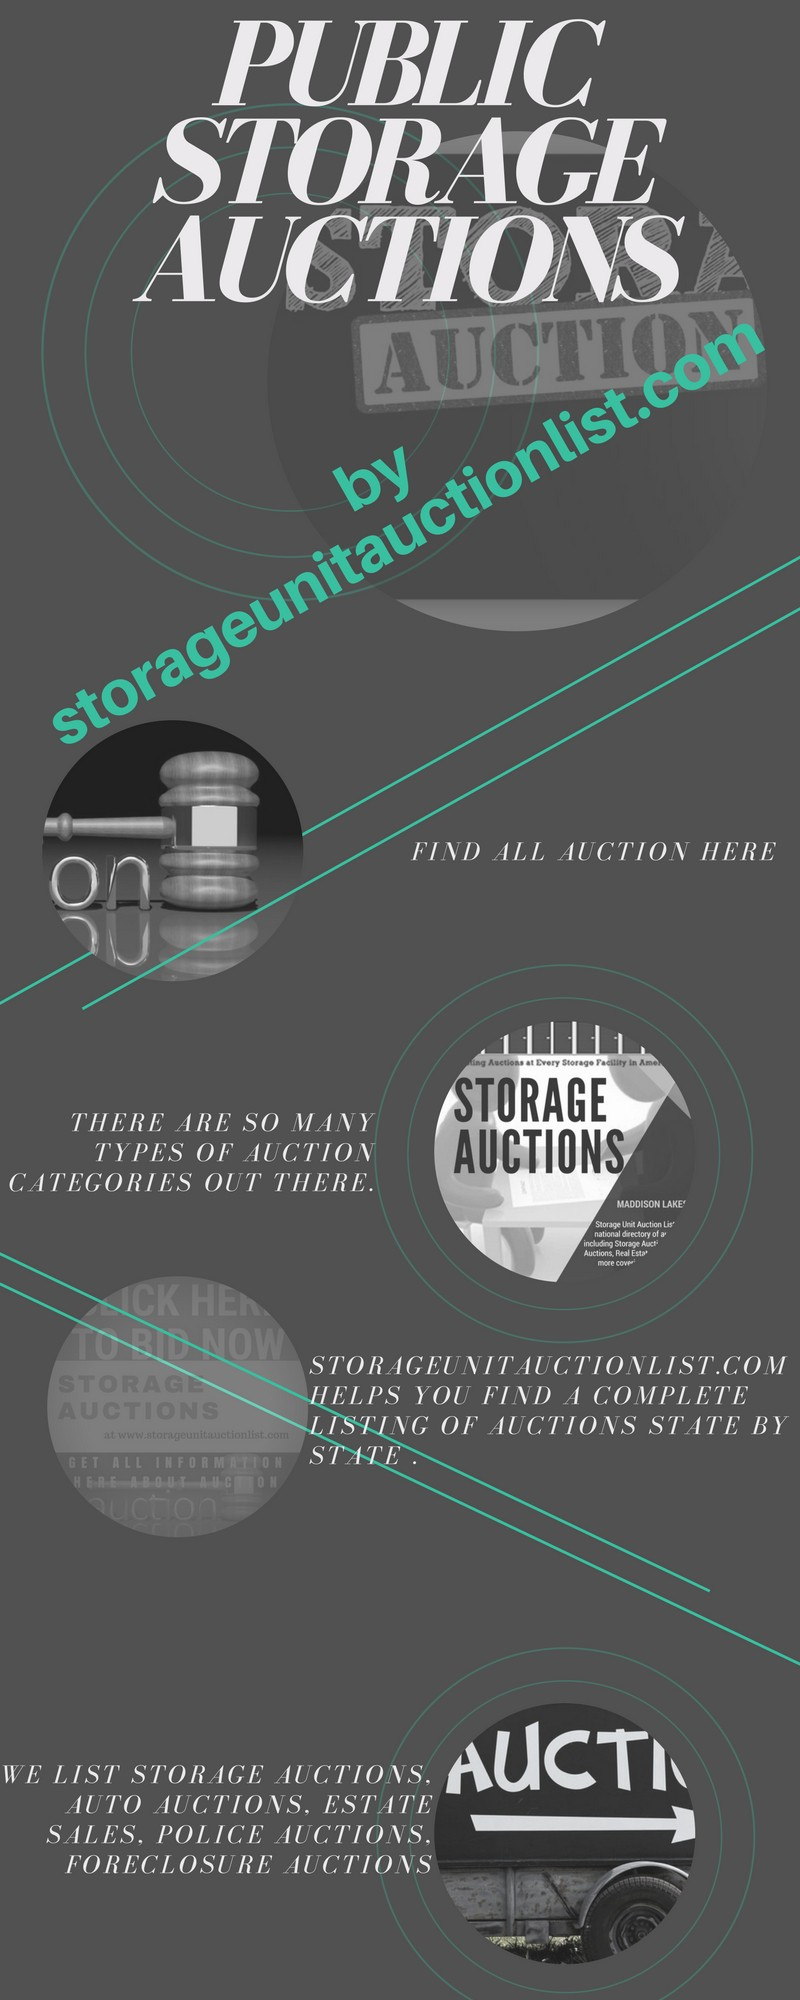 StorageUnitAuctionList.com subscribers can review their account for a complete listing of auctions in the region of their choice and review upcoming ... : public auction storage units  - Aquiesqueretaro.Com